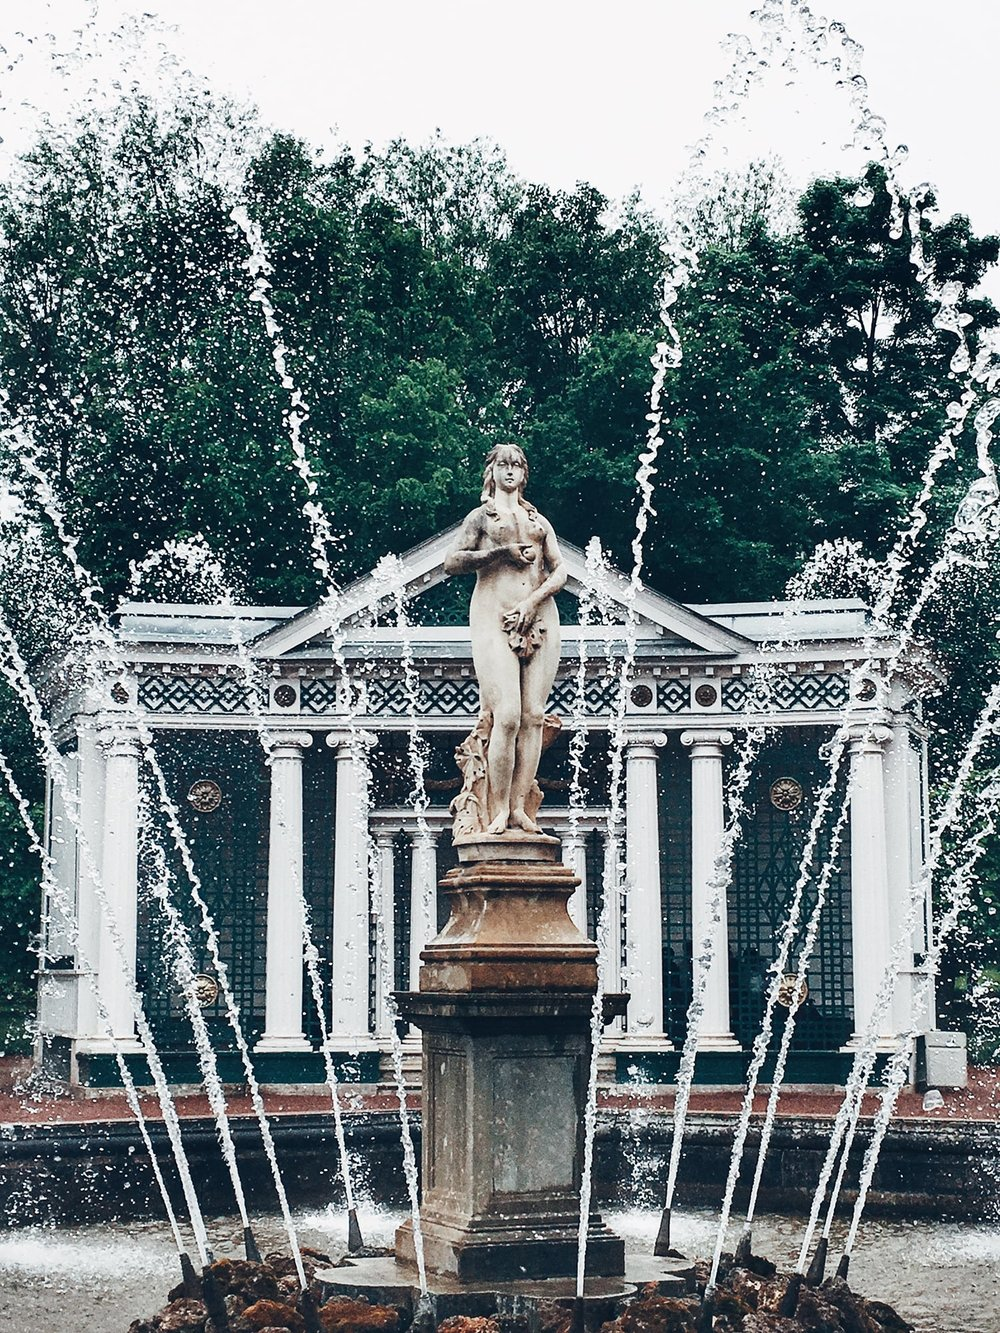 The Eve Fountain in the Lower Garden. Its counterpart, the Adam Fountain can be found in the exact same spot on the other side of the Sea Channel (St. Petersburg, Russia)